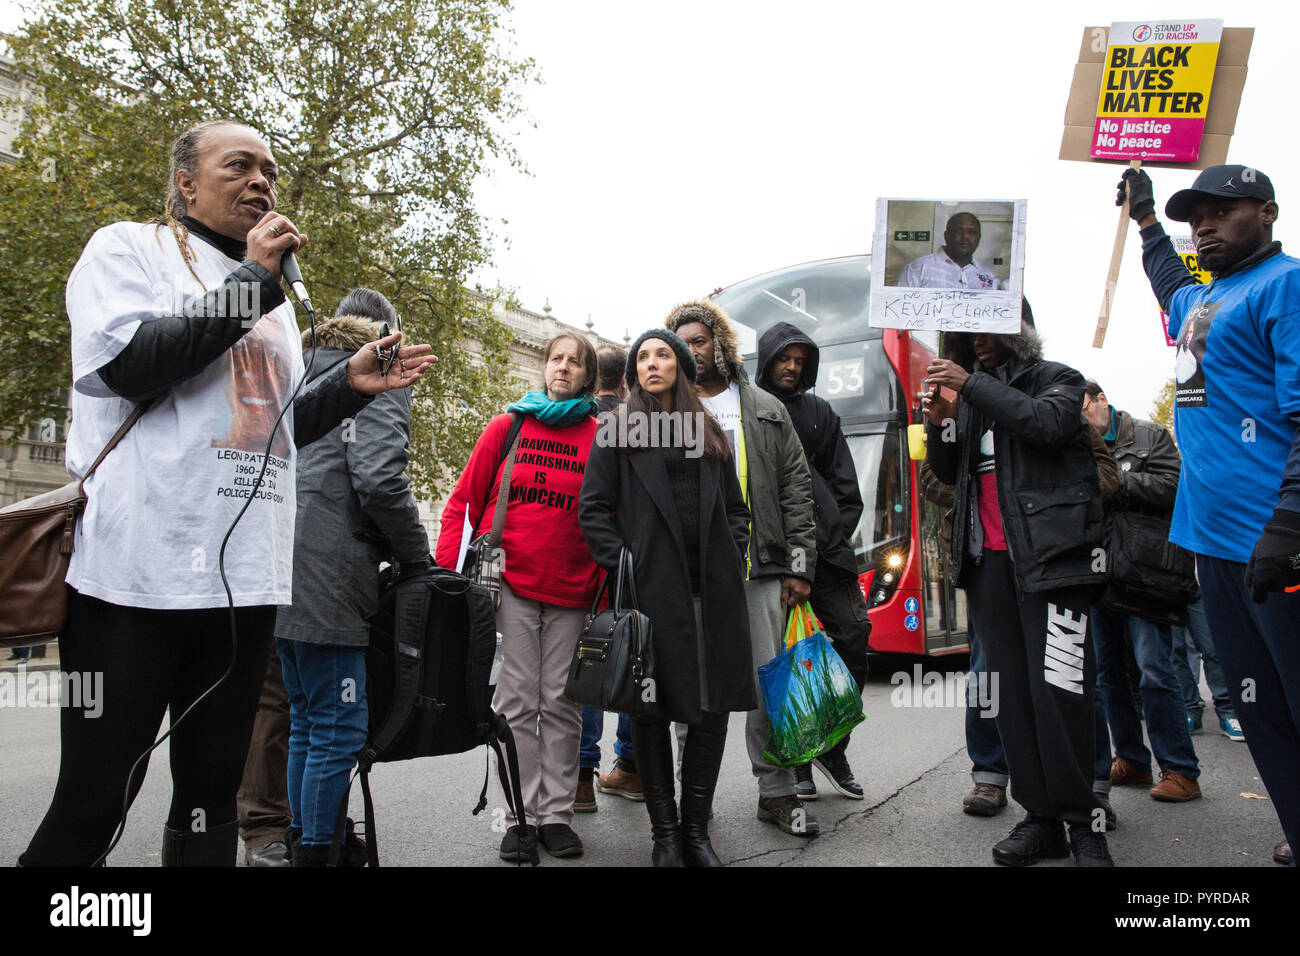 London, UK. 27th October, 2018. Stephanie Lightfoot-Bennett, twin sister of Leon Patterson, addresses campaigners from the UFFC. - Stock Image